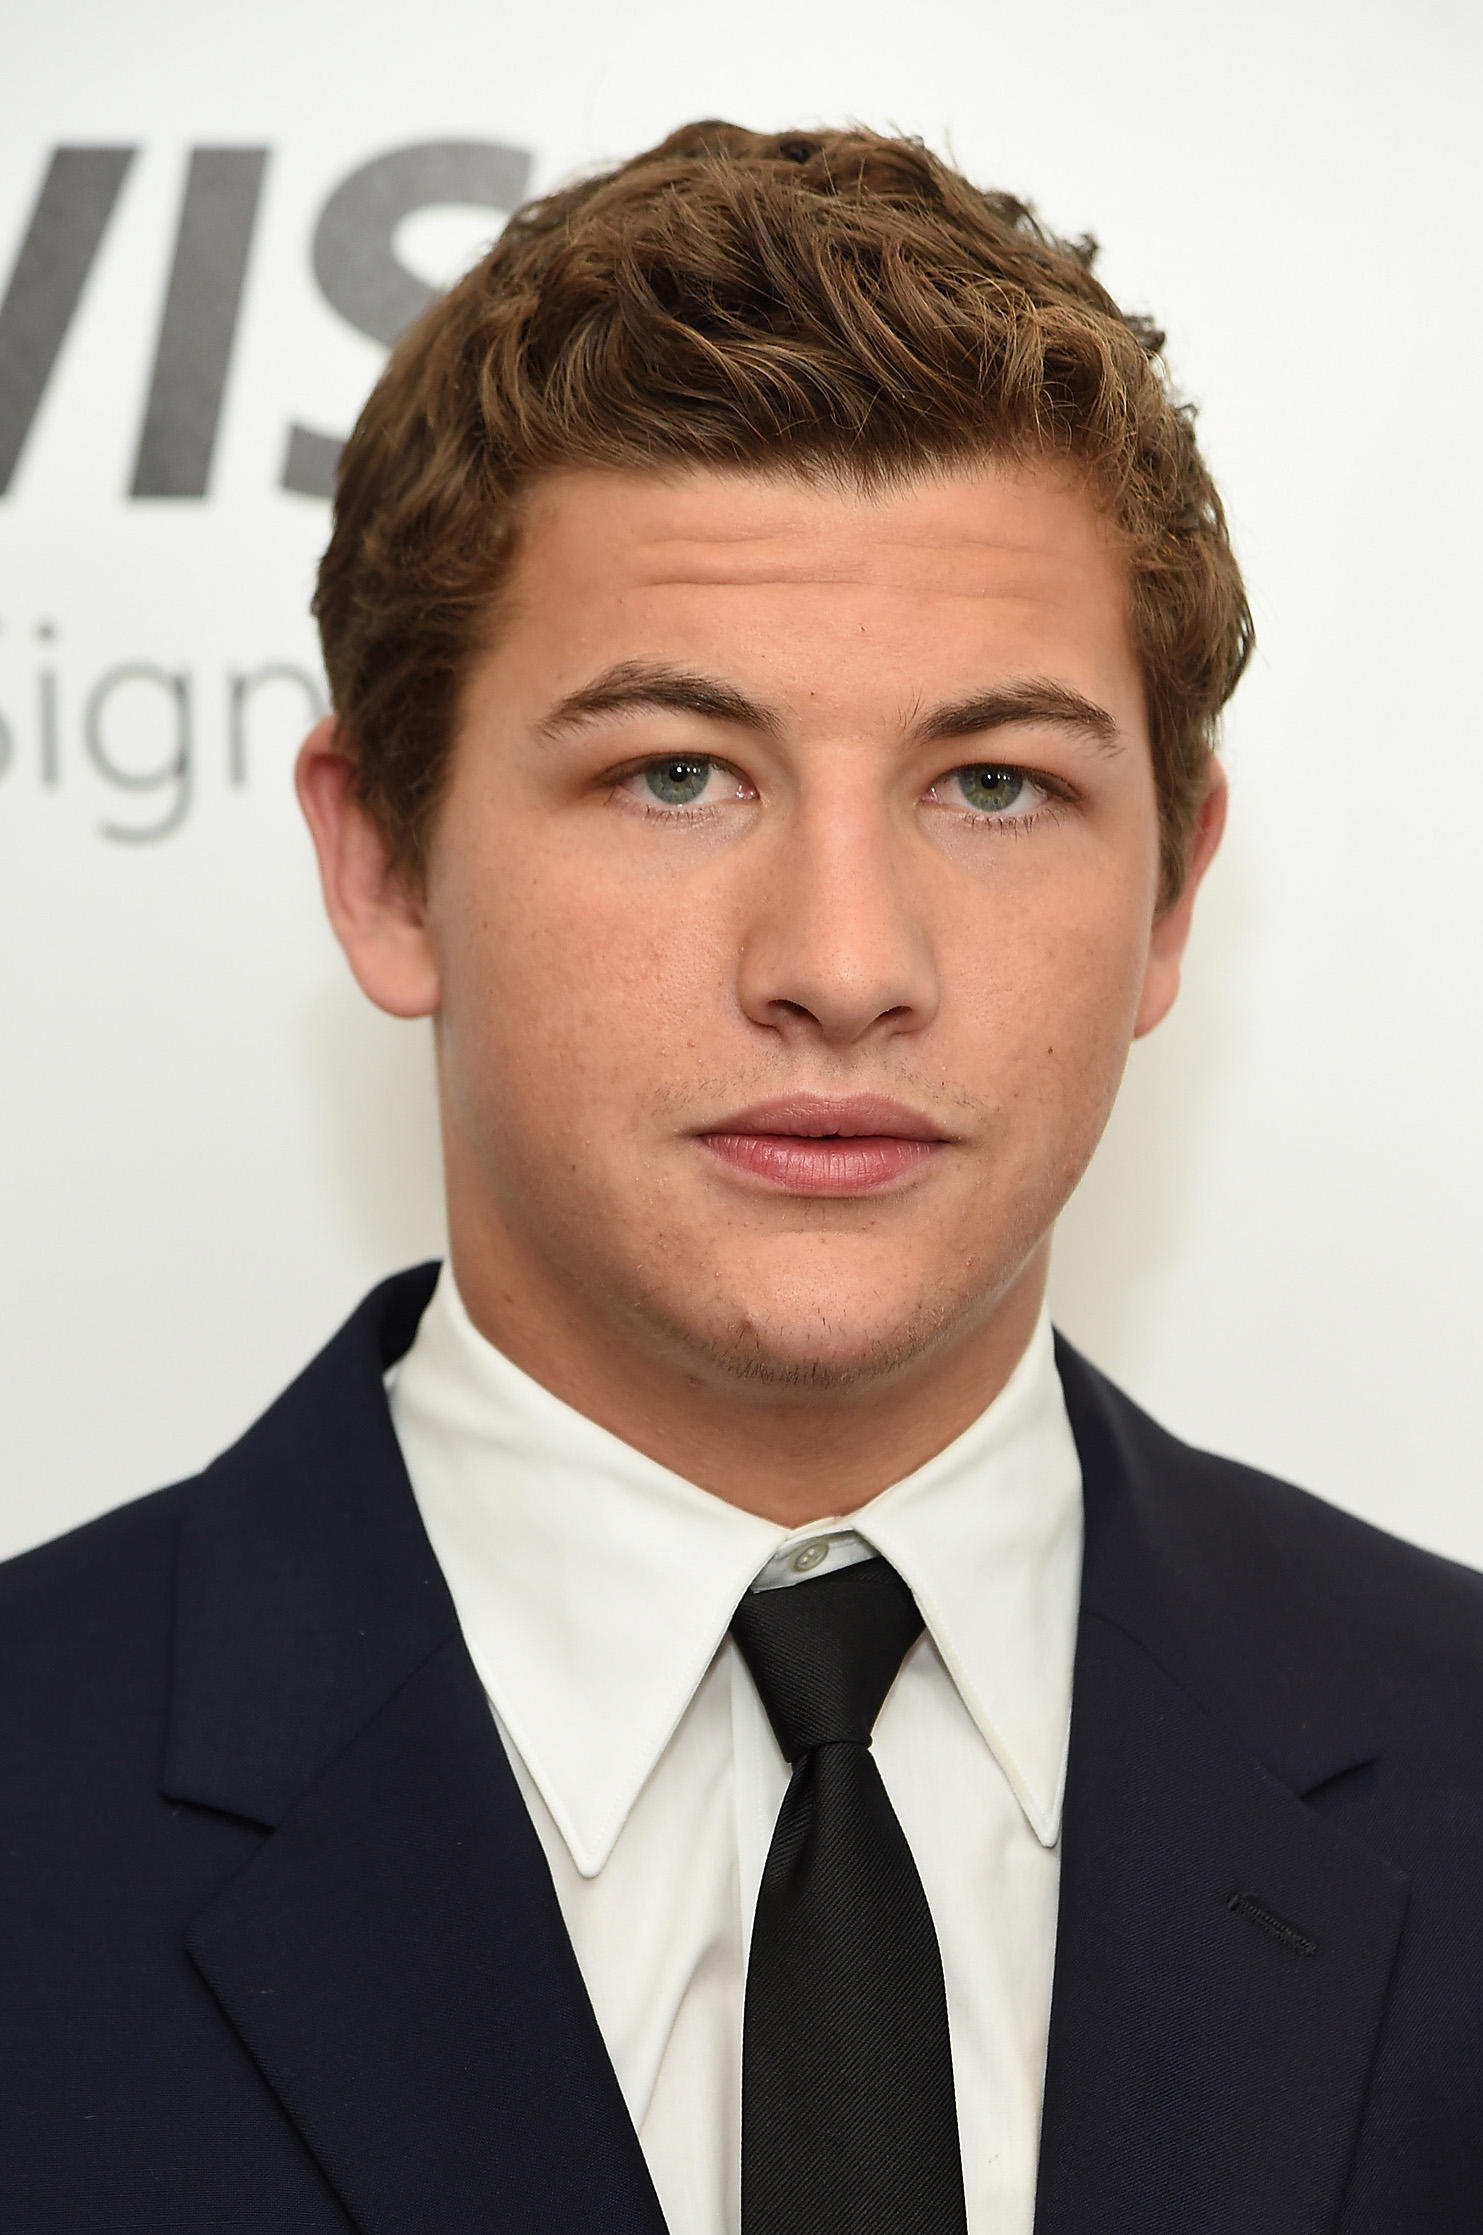 Tye Sheridan at the 'X-Men Apocalypse' New York screening at Entertainment Weekly.